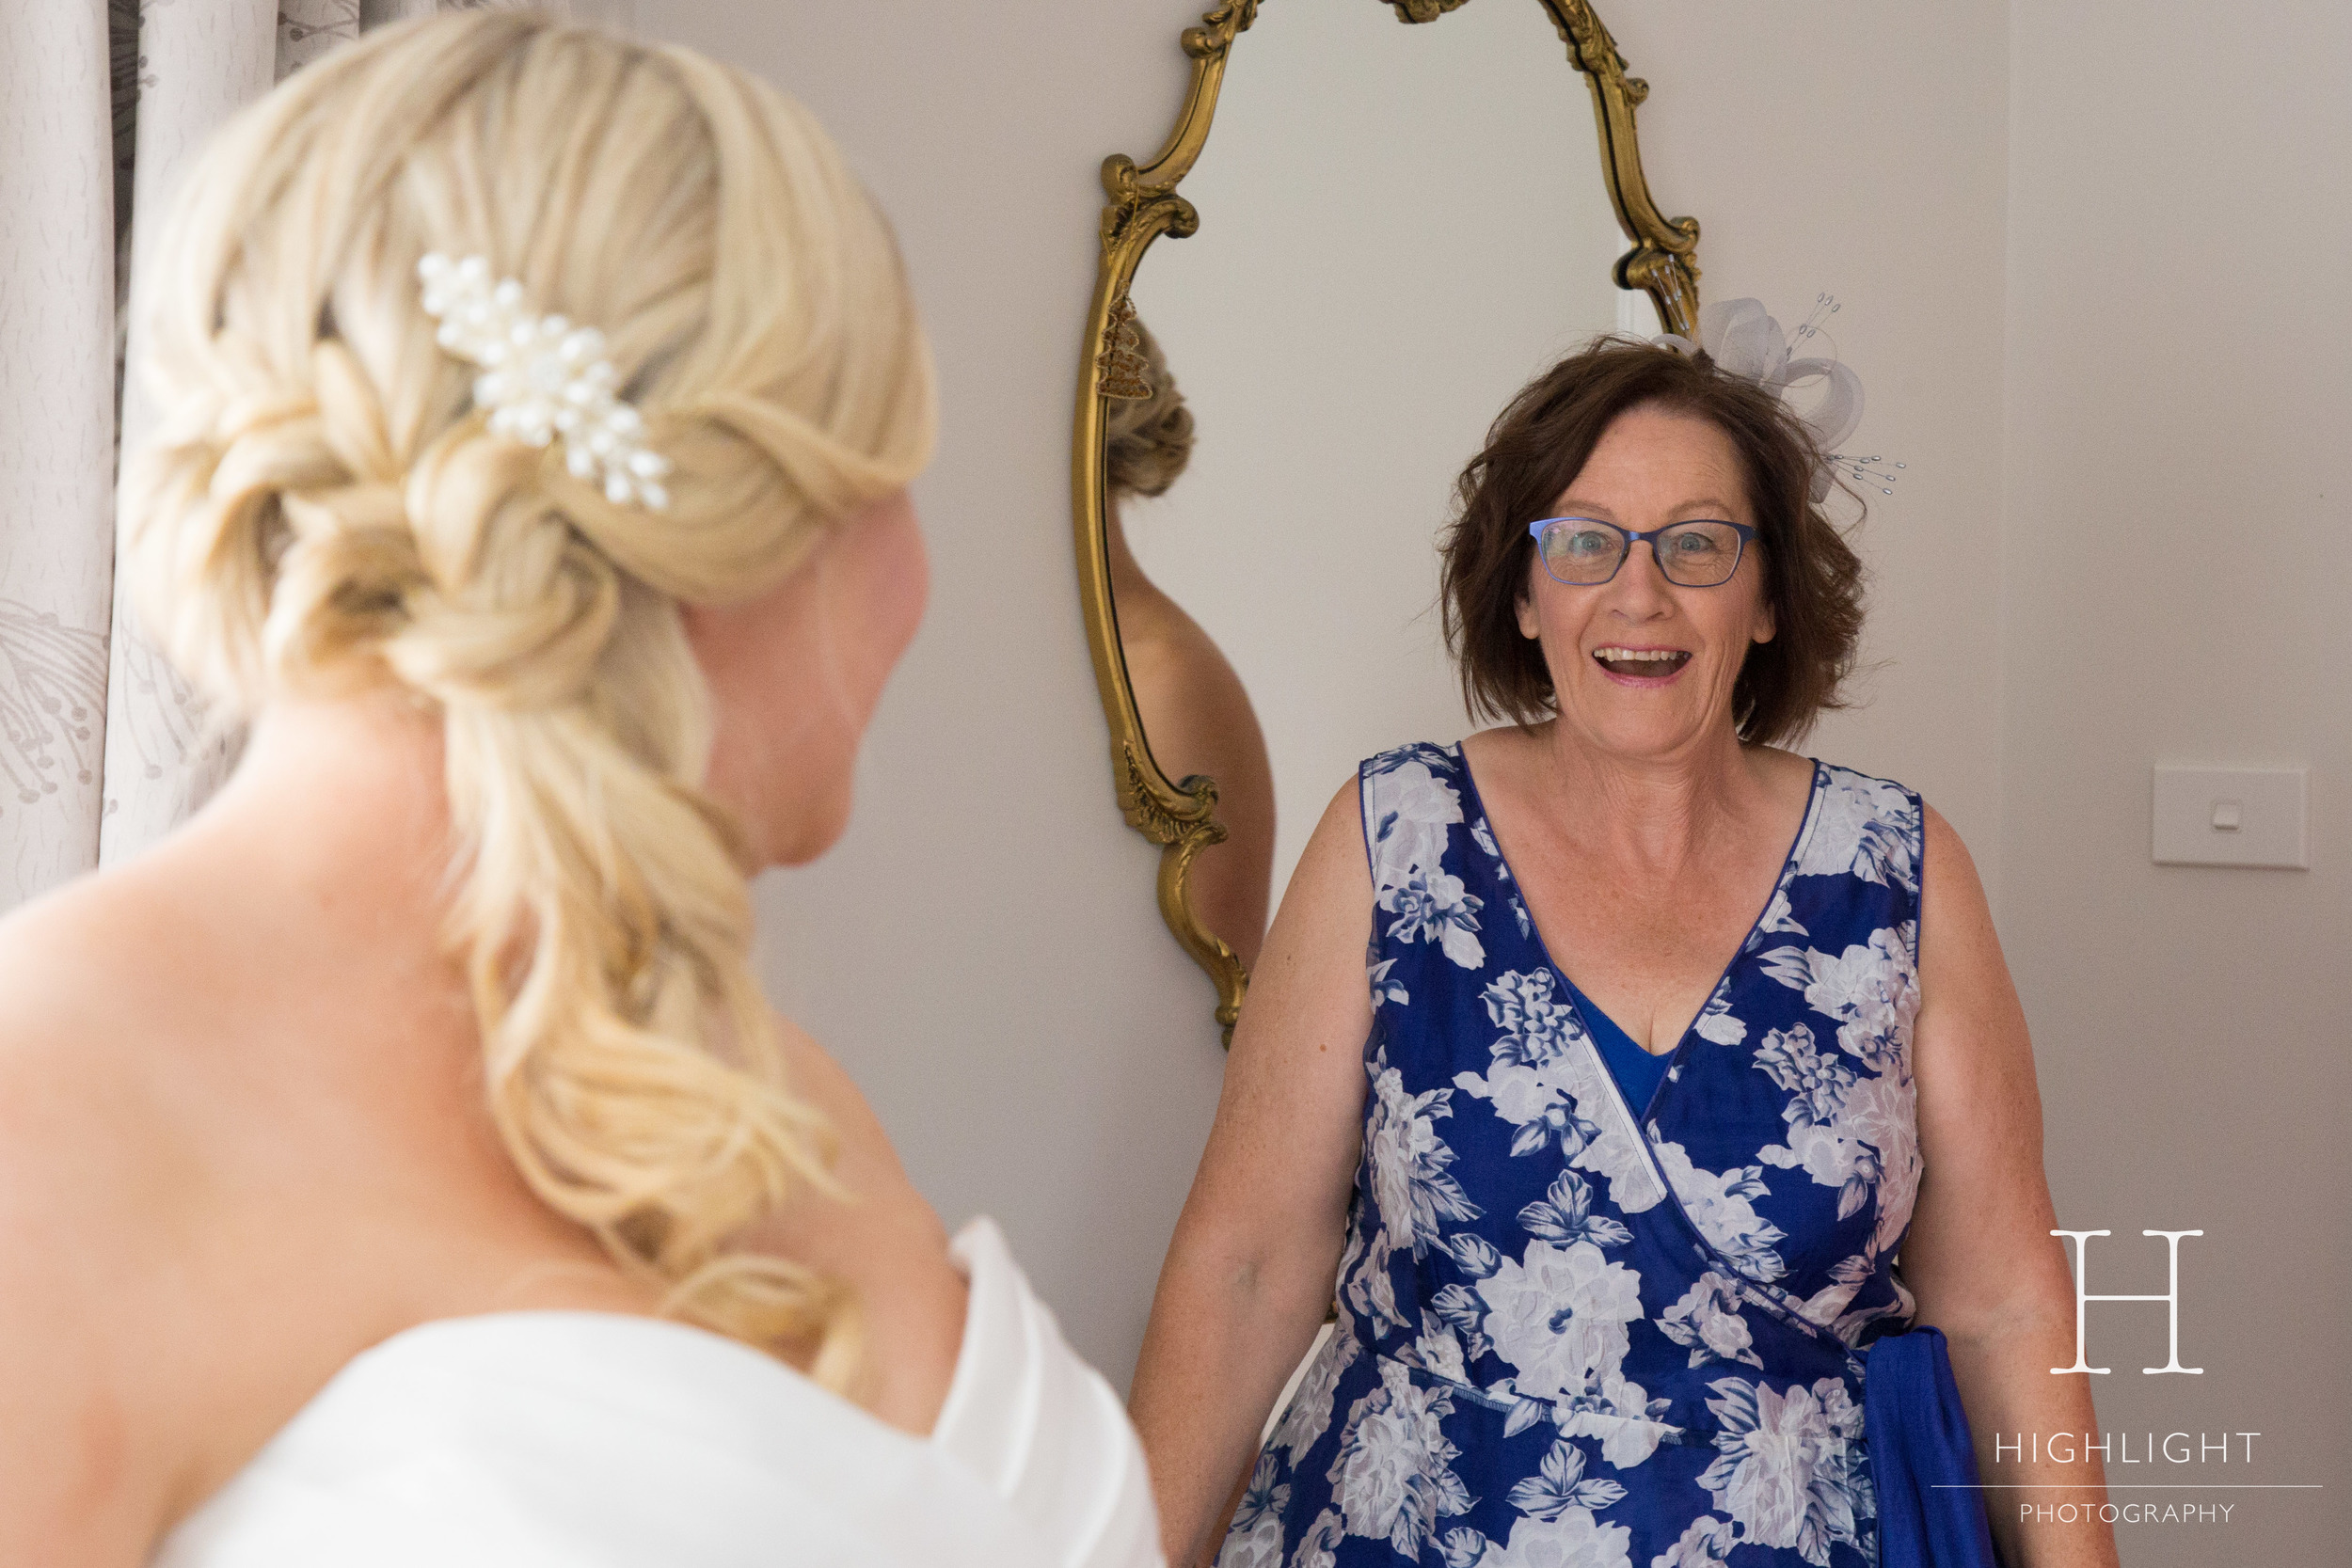 highlight_photography_wedding_new_zealand_mum.jpg